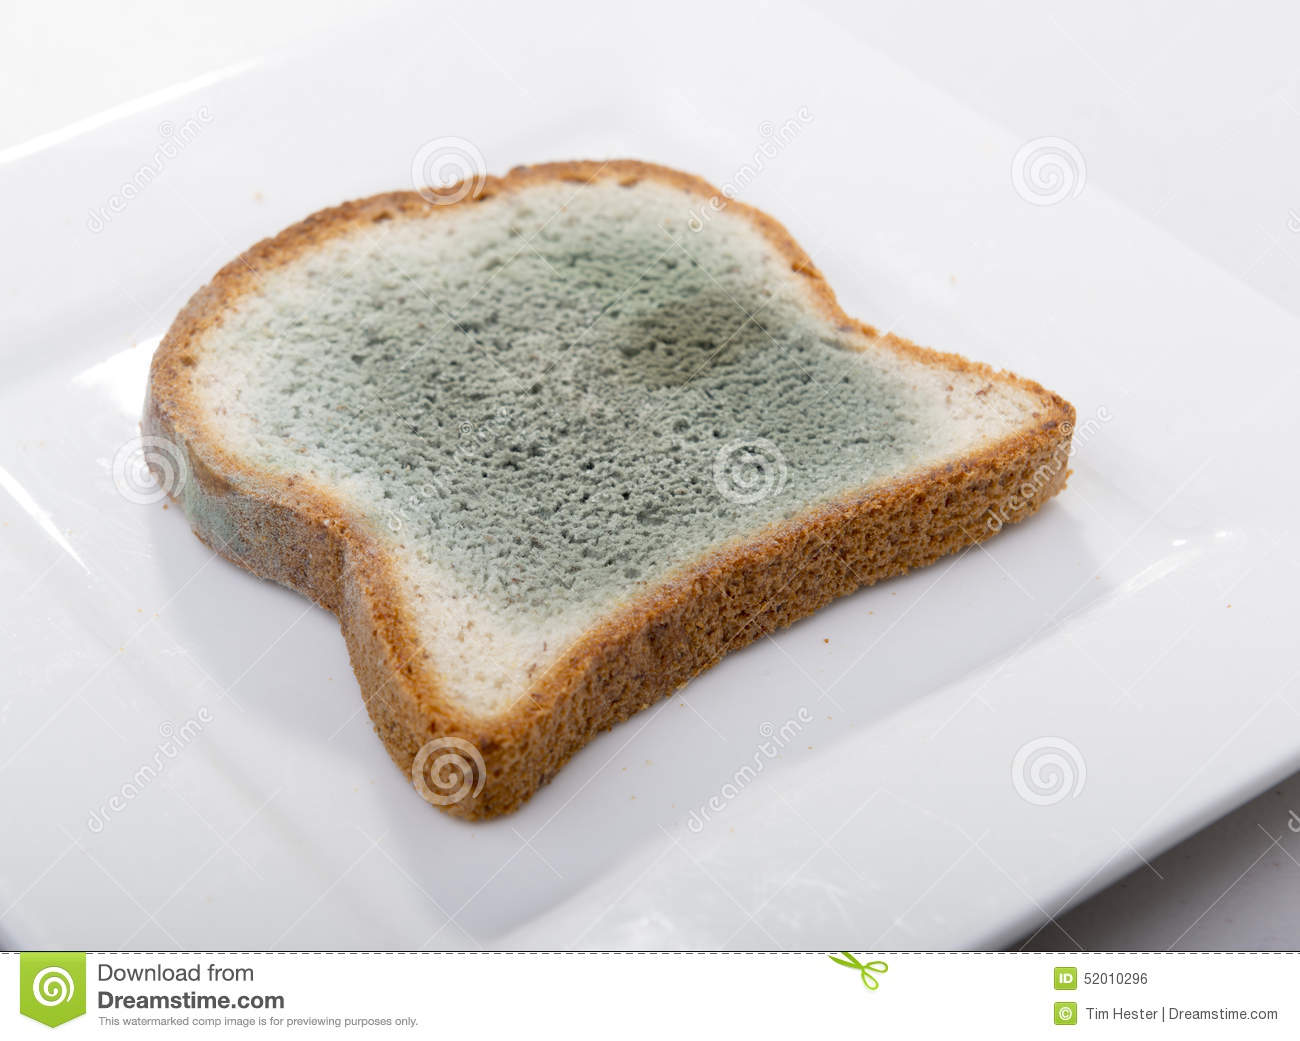 Mould growing rapidly on mouldy bread in green and white spores.